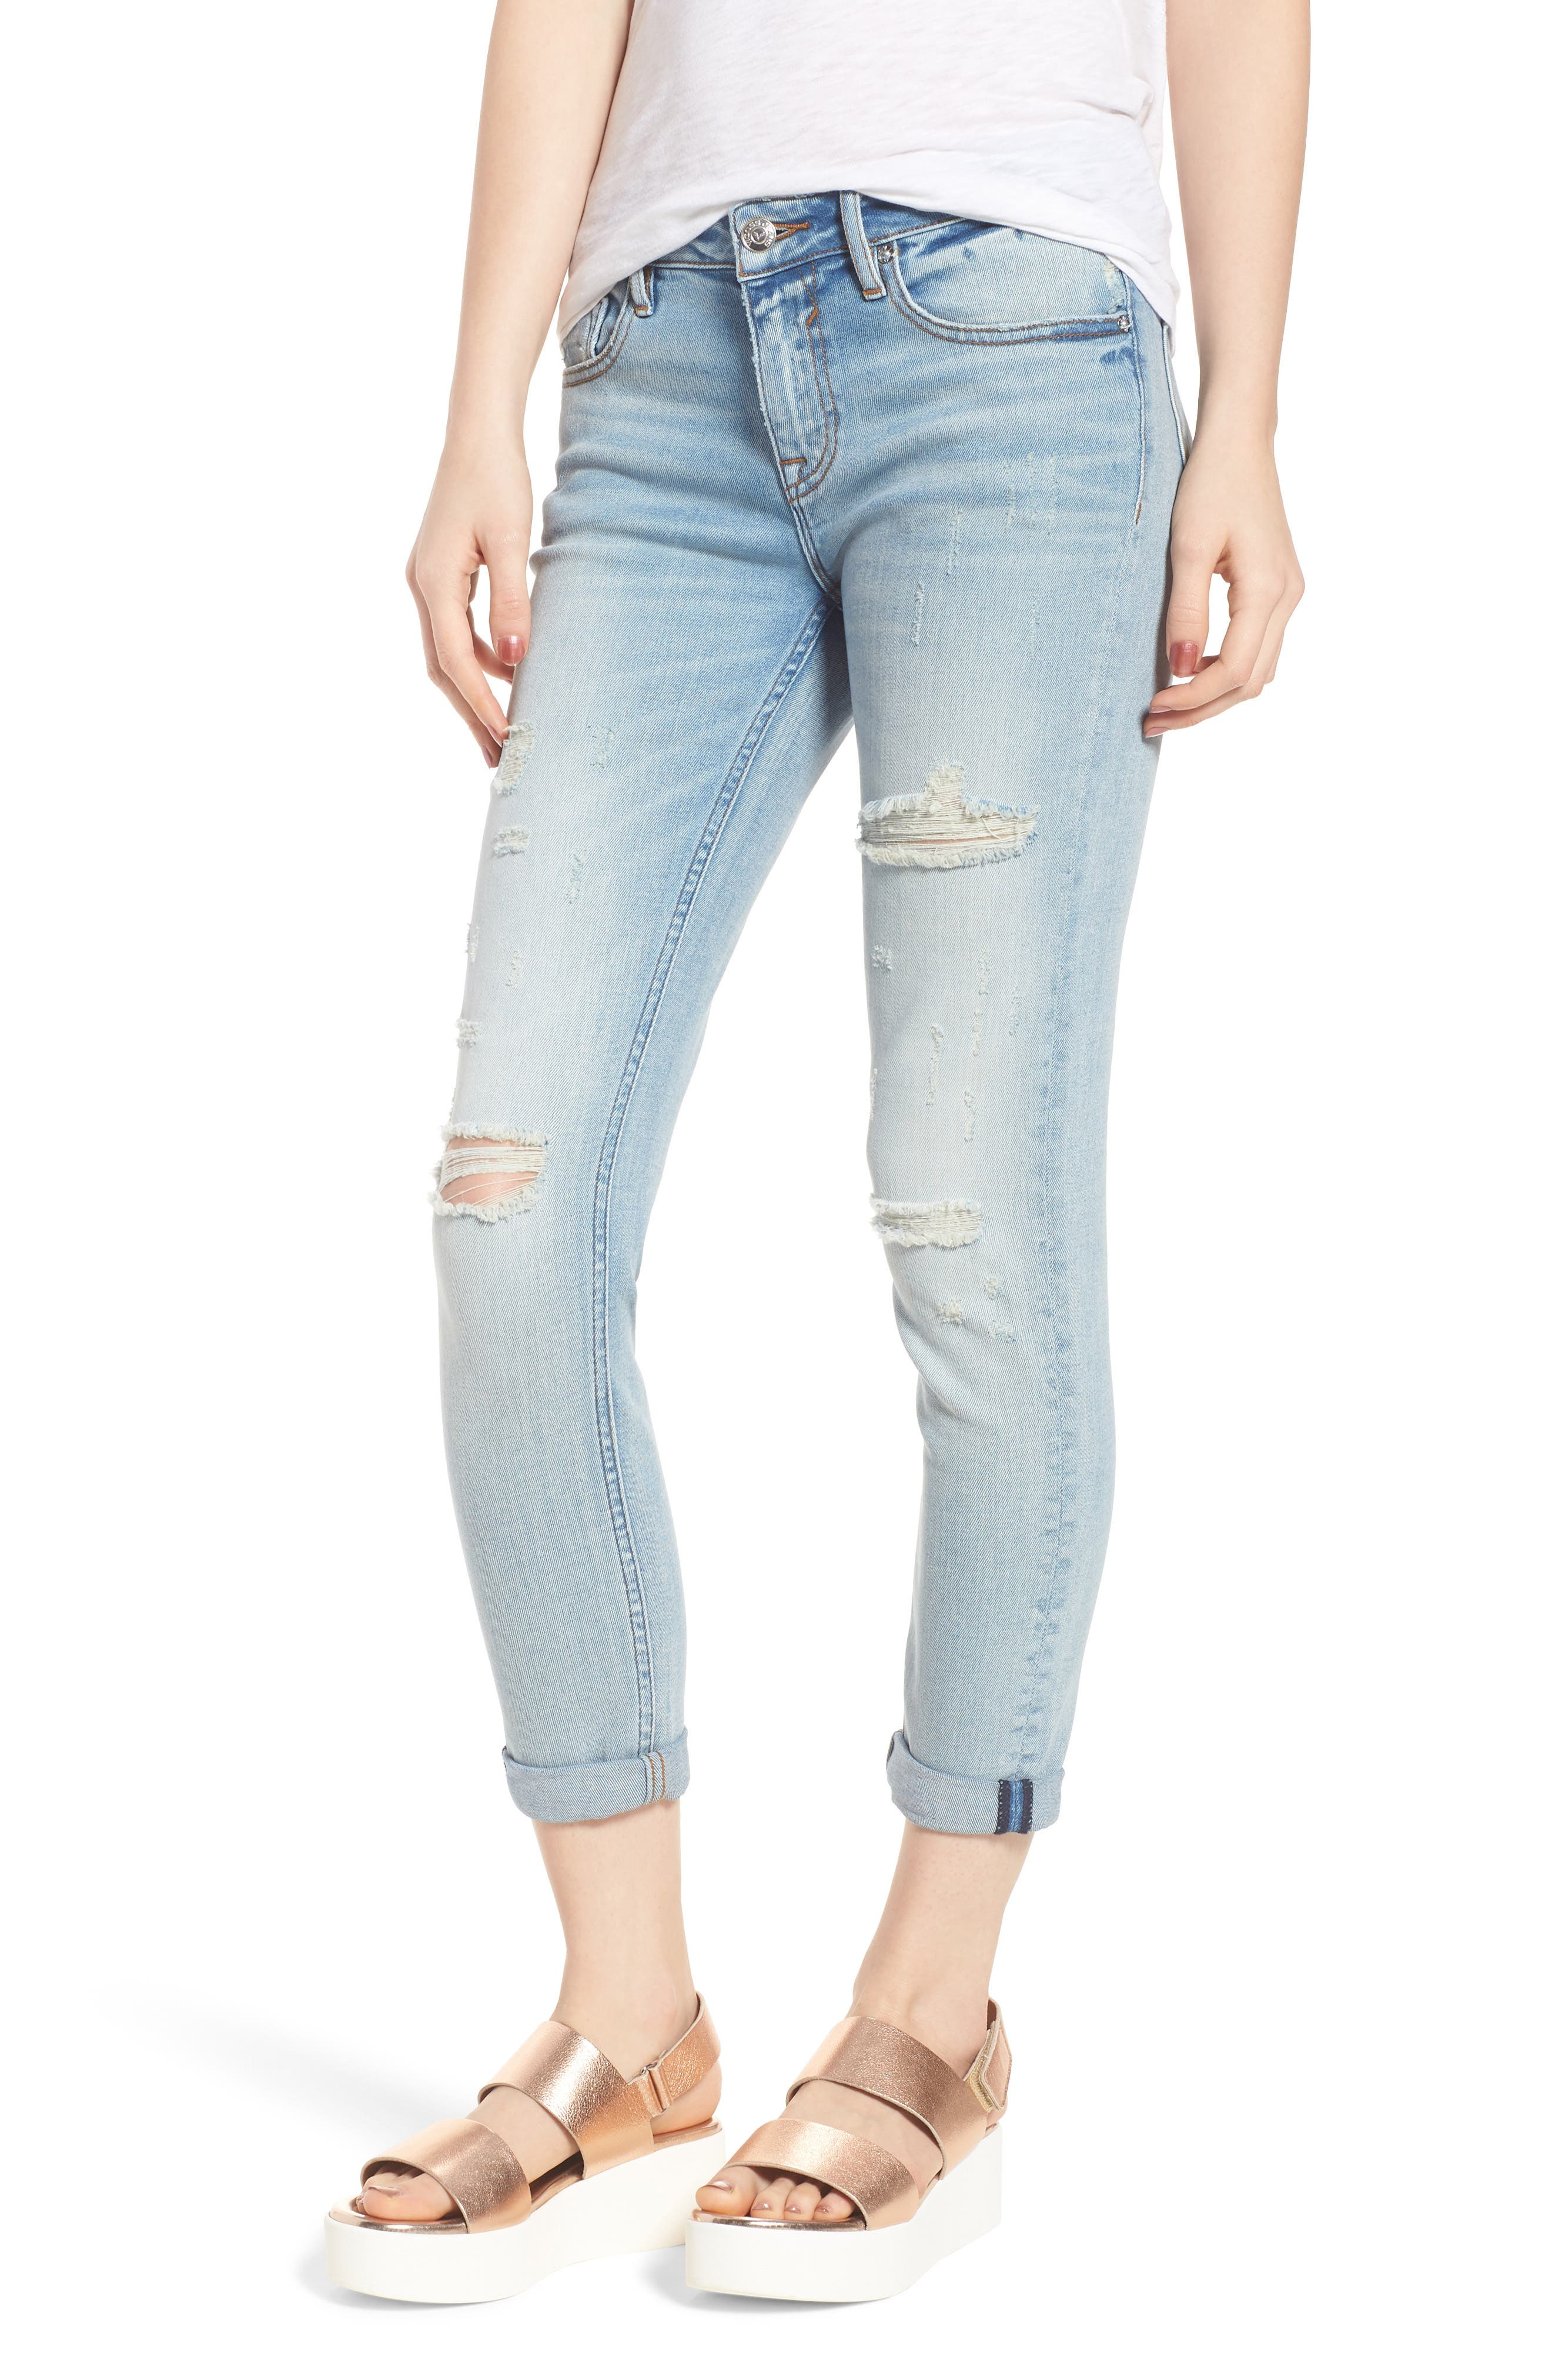 Thompson Tomboy Distressed Skinny Jeans,                             Main thumbnail 1, color,                             Light Wash